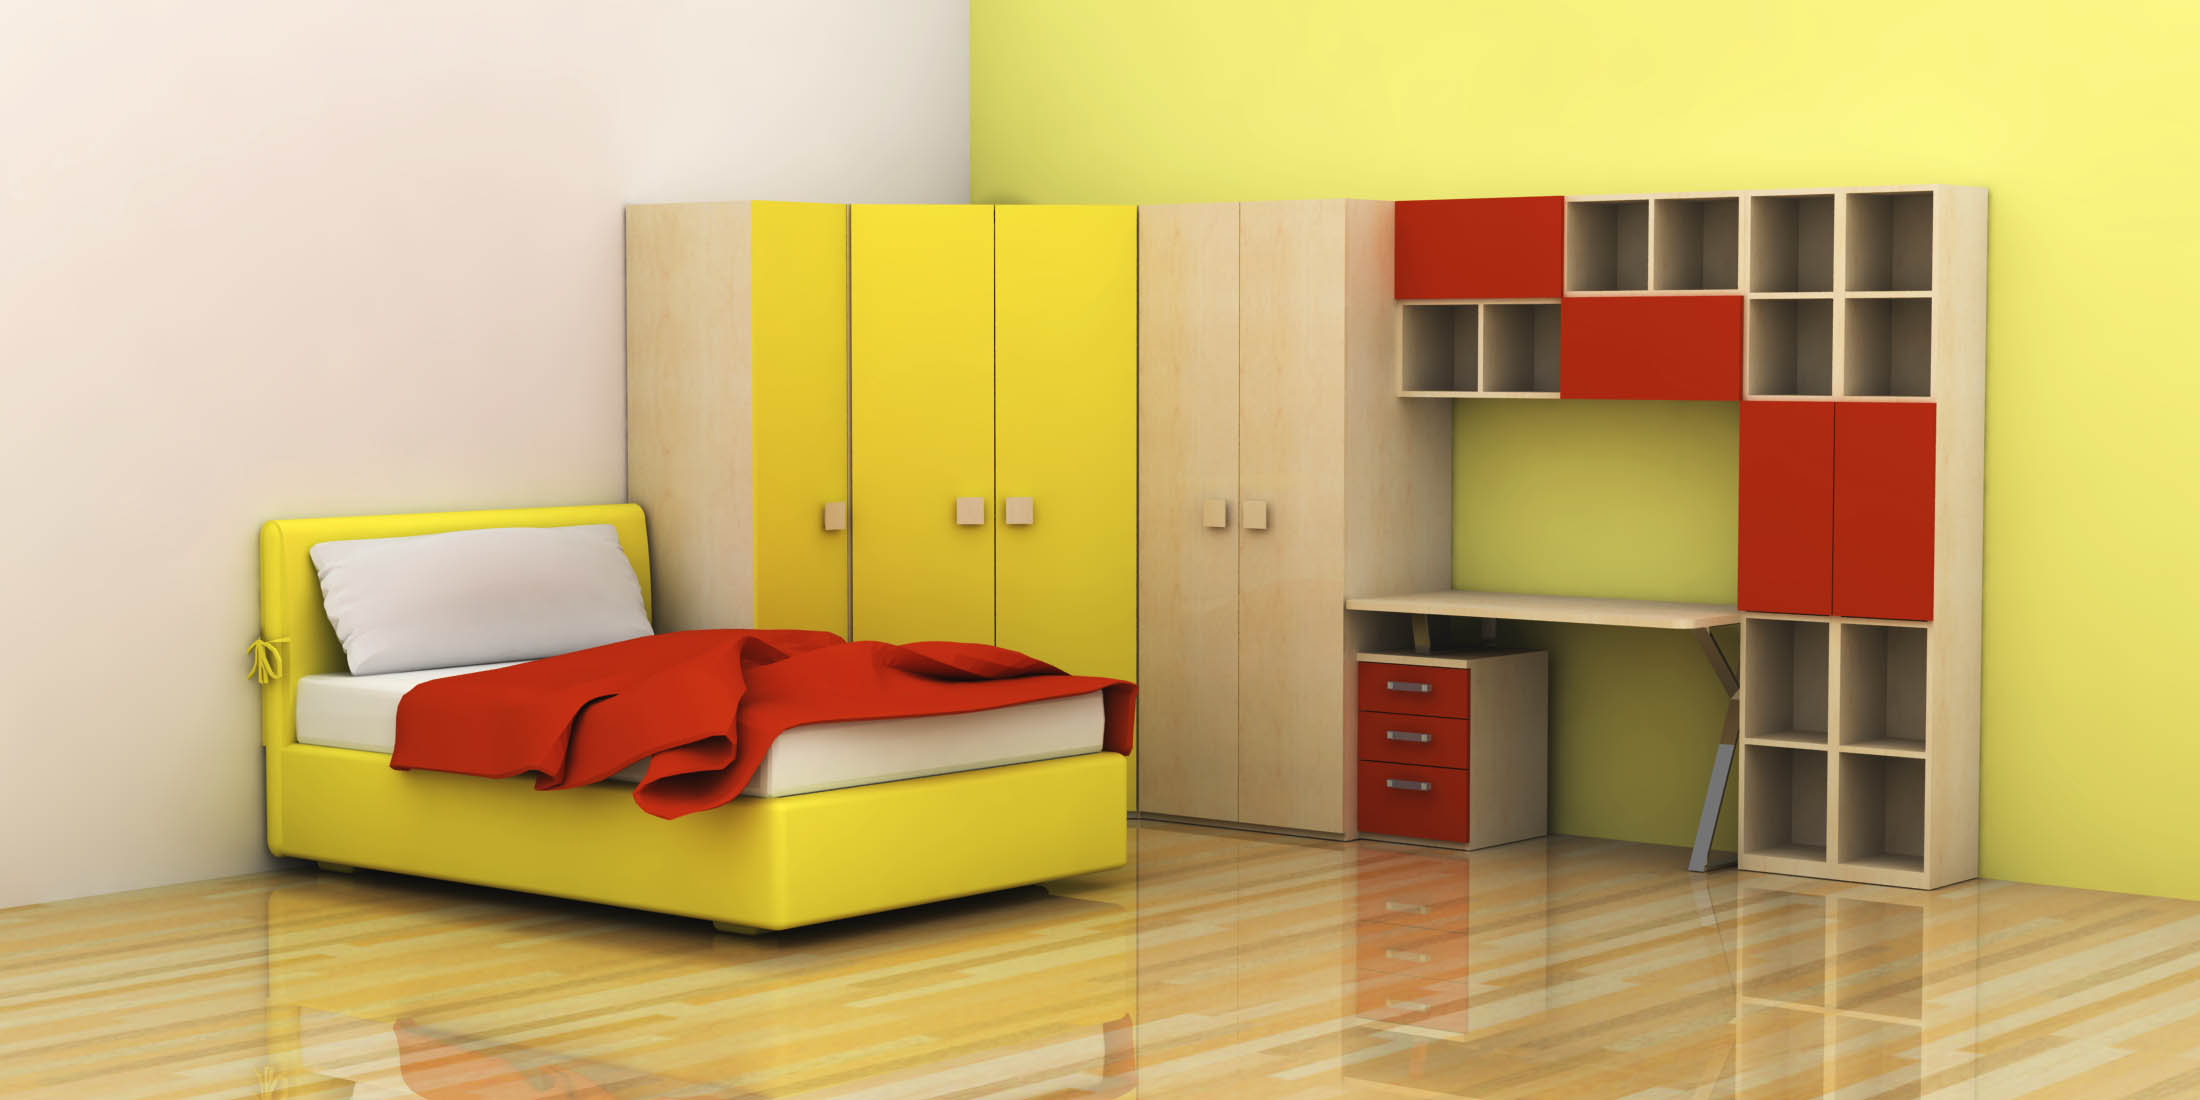 Merveilleux Adorable Design Of The Bedroom Kids Areas With Yellow Wall With  Brown Wooden And Red